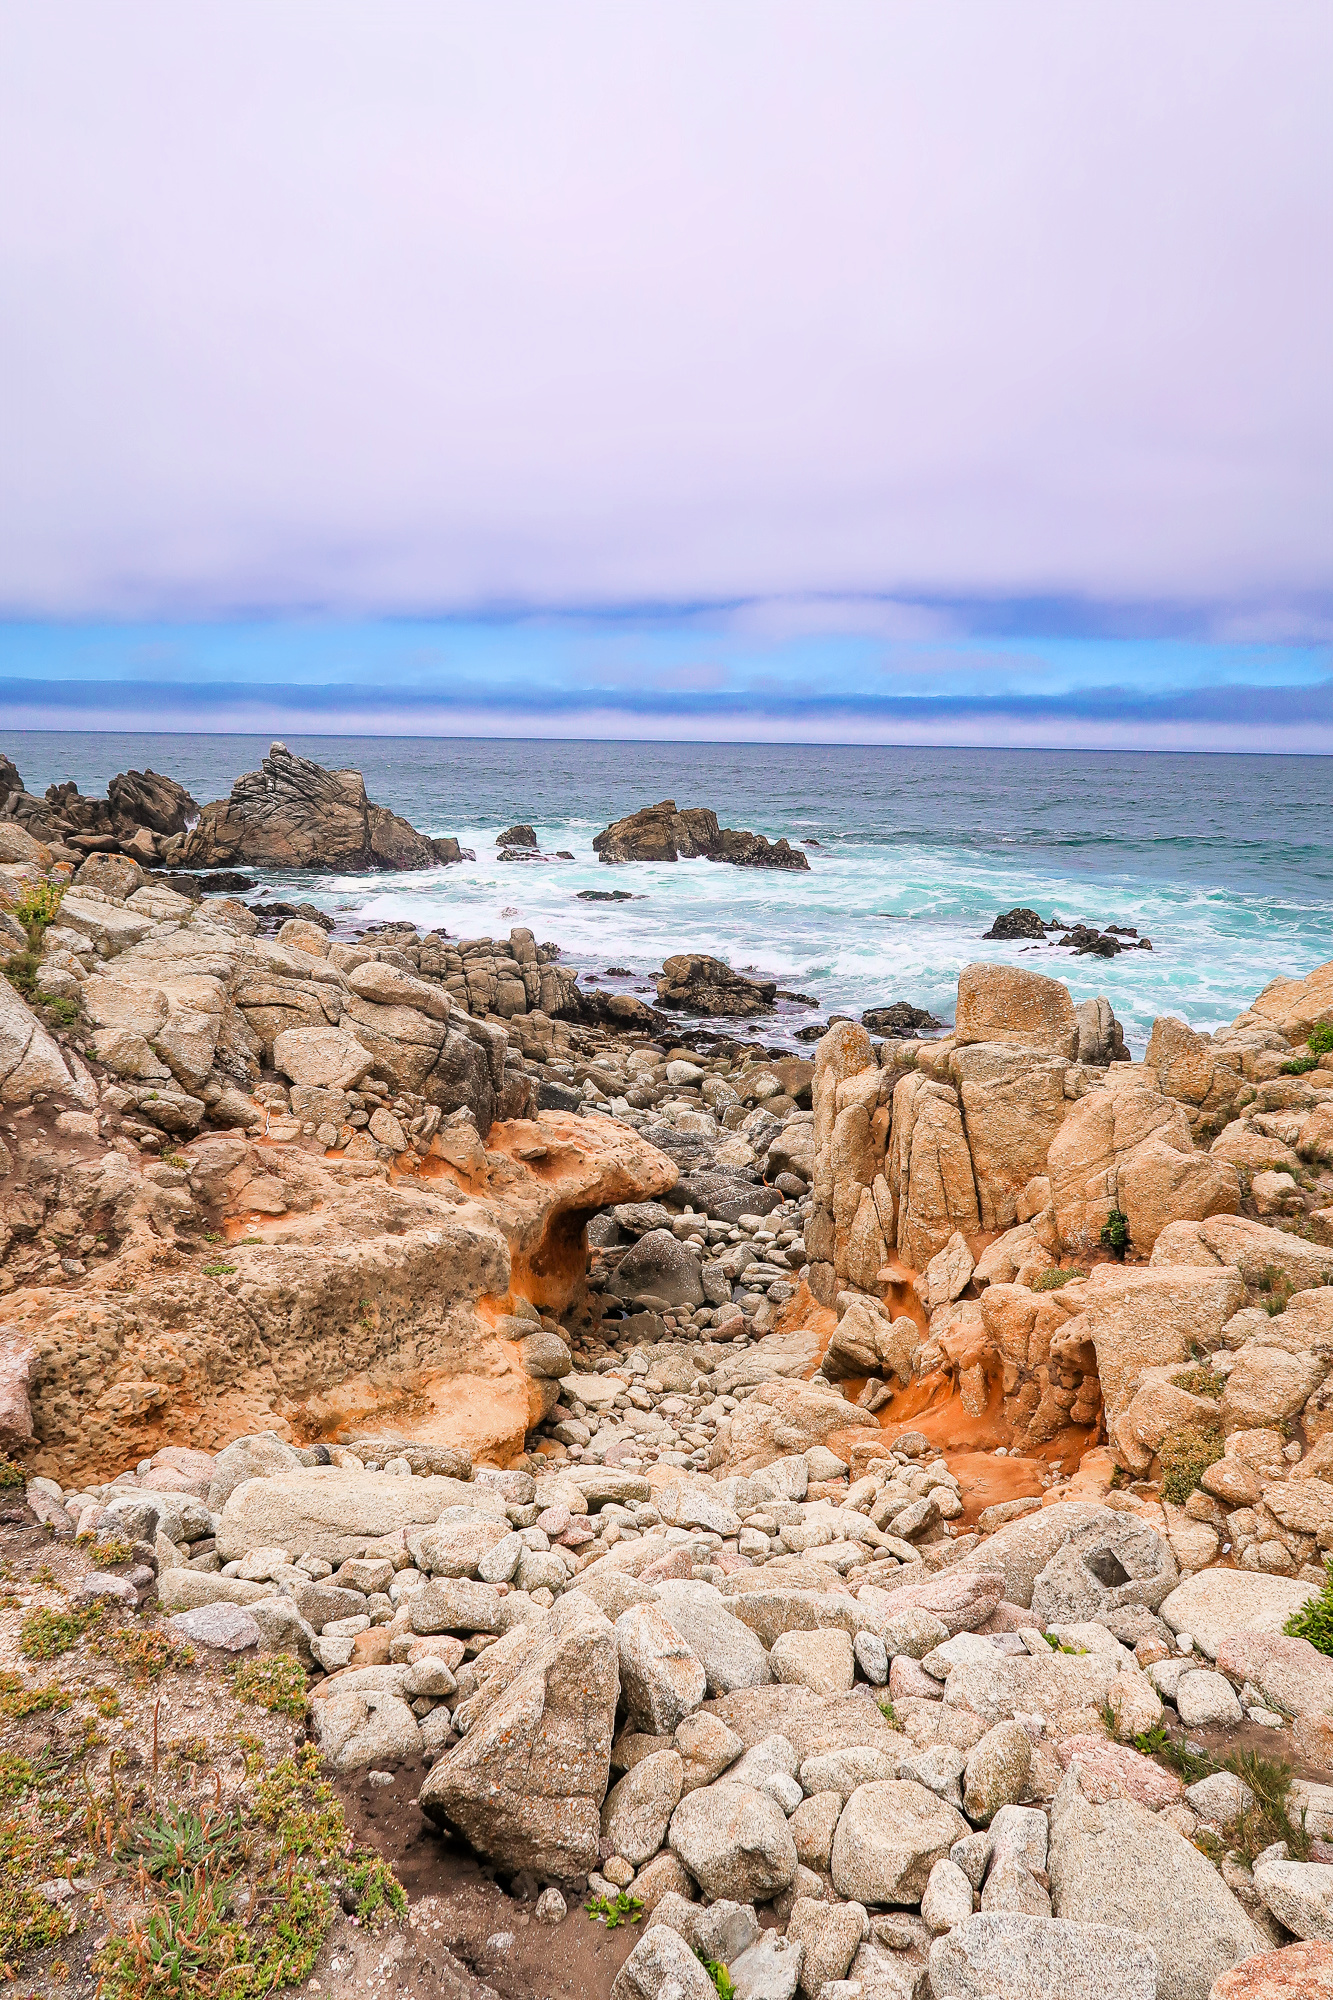 Pebble beach, 17-Miles Drive, Monterey, Highway One, Highway 1, Coast of California, Road Trip, California Coast, California Travel, Itinerary, Cali Coast Trip, Travel the Coast, Seals, Seal Beach, Travel Itinerary, Travel Blog, Pacific Highway